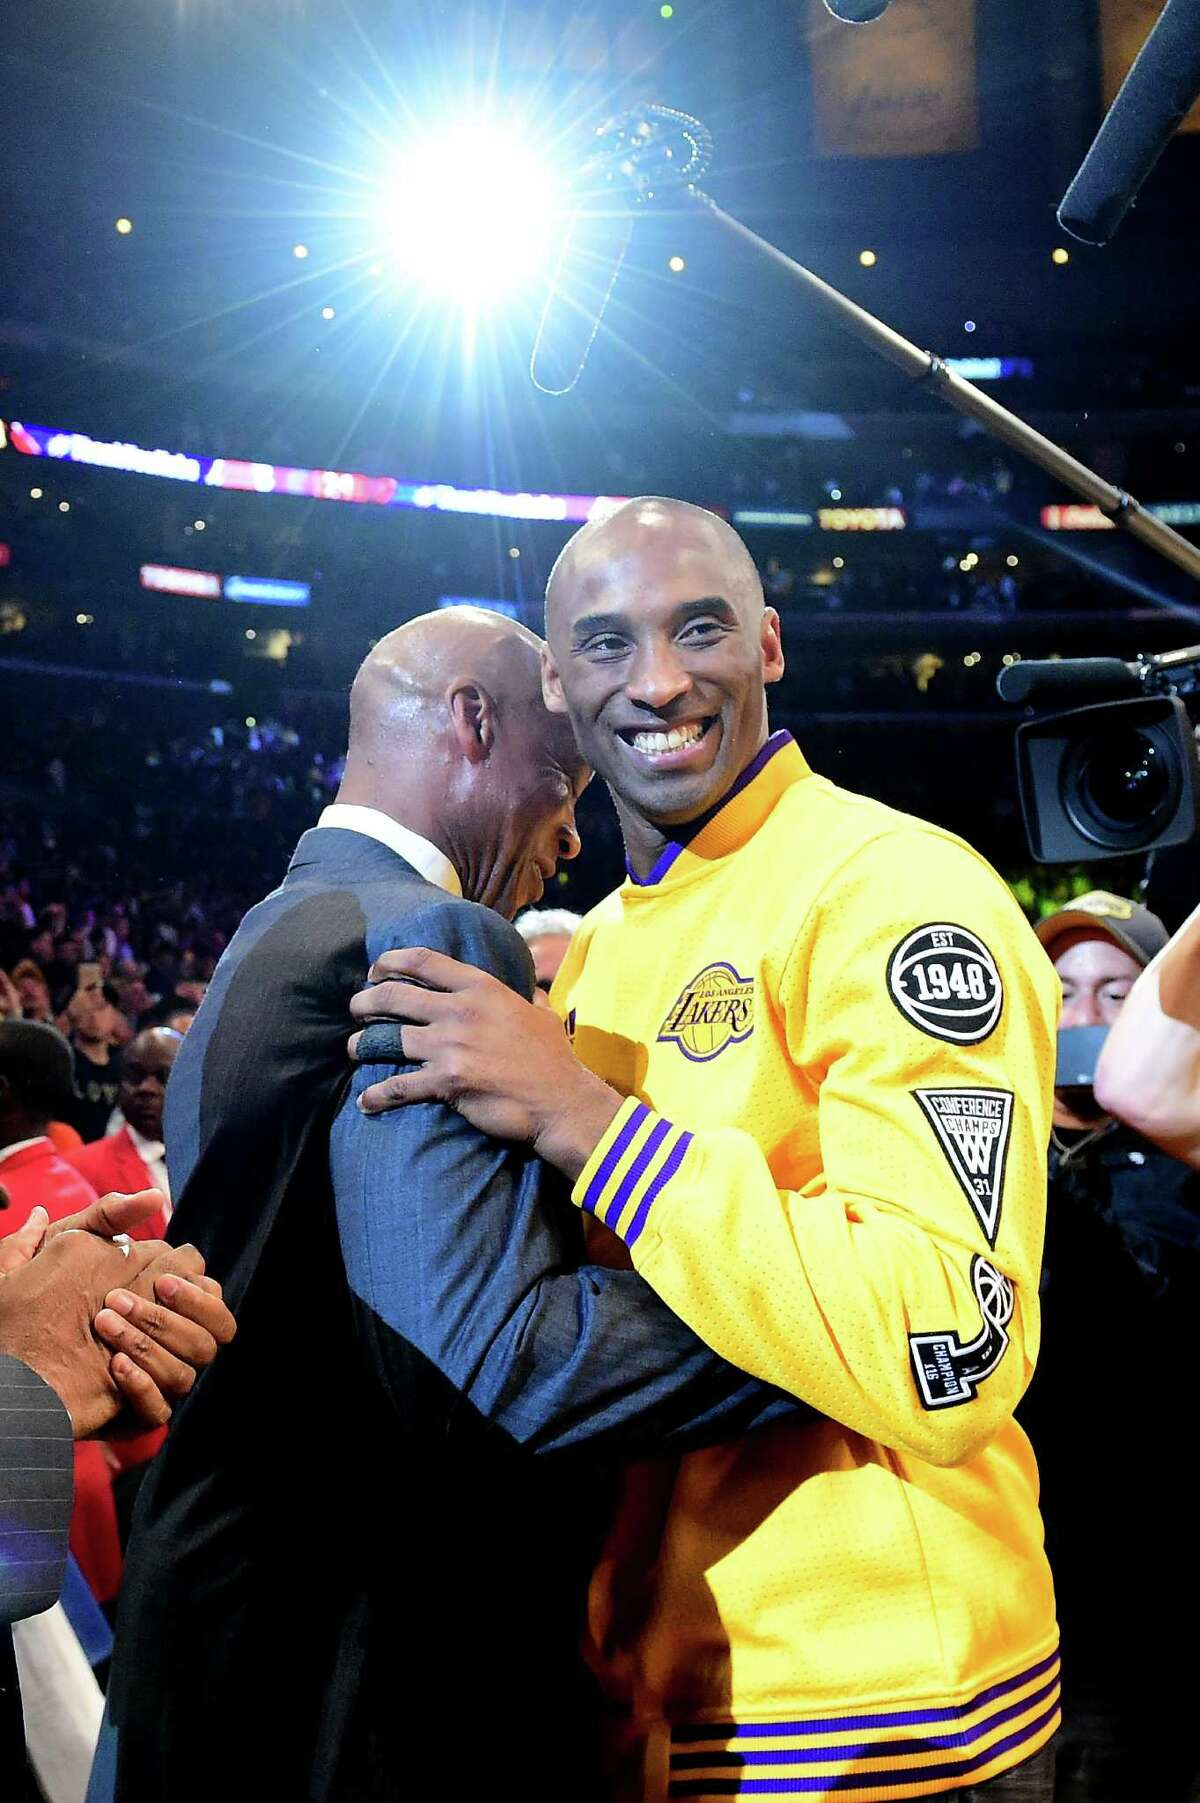 LOS ANGELES, CA - APRIL 13: Kobe Bryant #24 of the Los Angeles Lakers hugs head coach Byron Scott before taking on the Utah Jazz in Bryant's final NBA game at Staples Center on April 13, 2016 in Los Angeles, California. NOTE TO USER: User expressly acknowledges and agrees that, by downloading and or using this photograph, User is consenting to the terms and conditions of the Getty Images License Agreement.